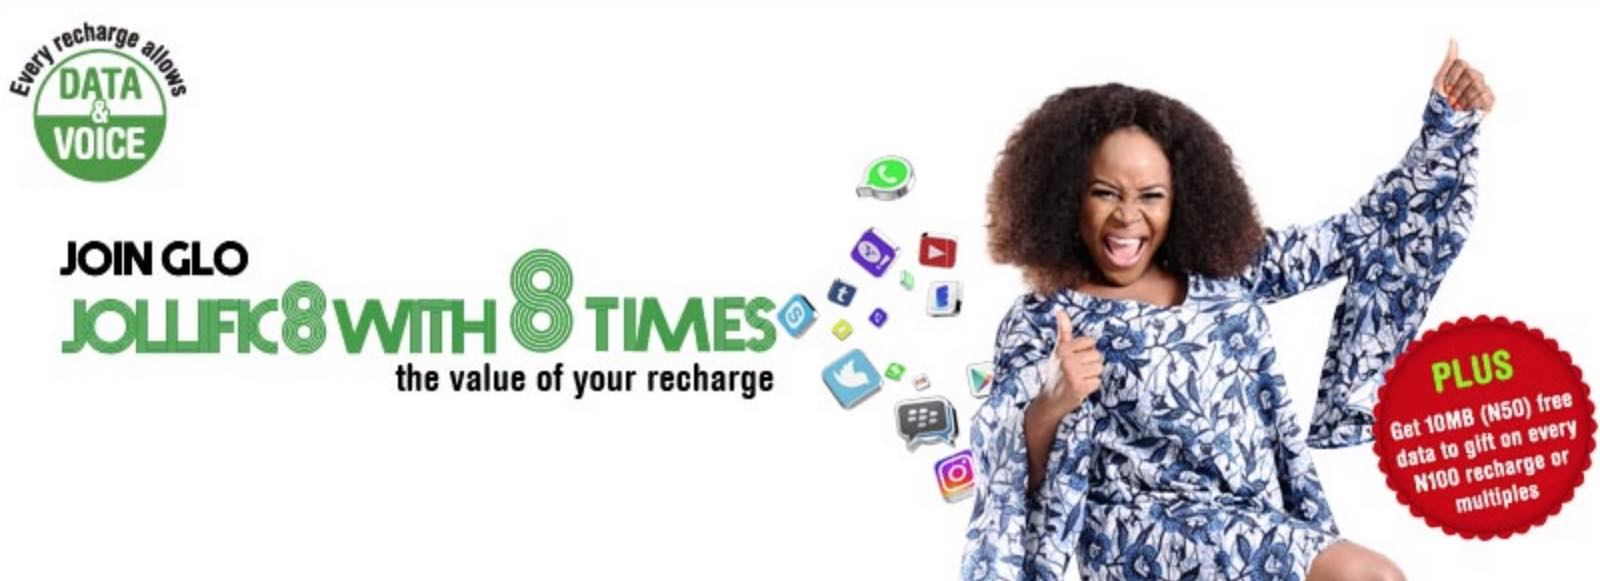 How to Activate Glo Jollific8 free Data Where you can get 5GB(#100 bal) or 10GB(N200 bal) – Money would not be touched